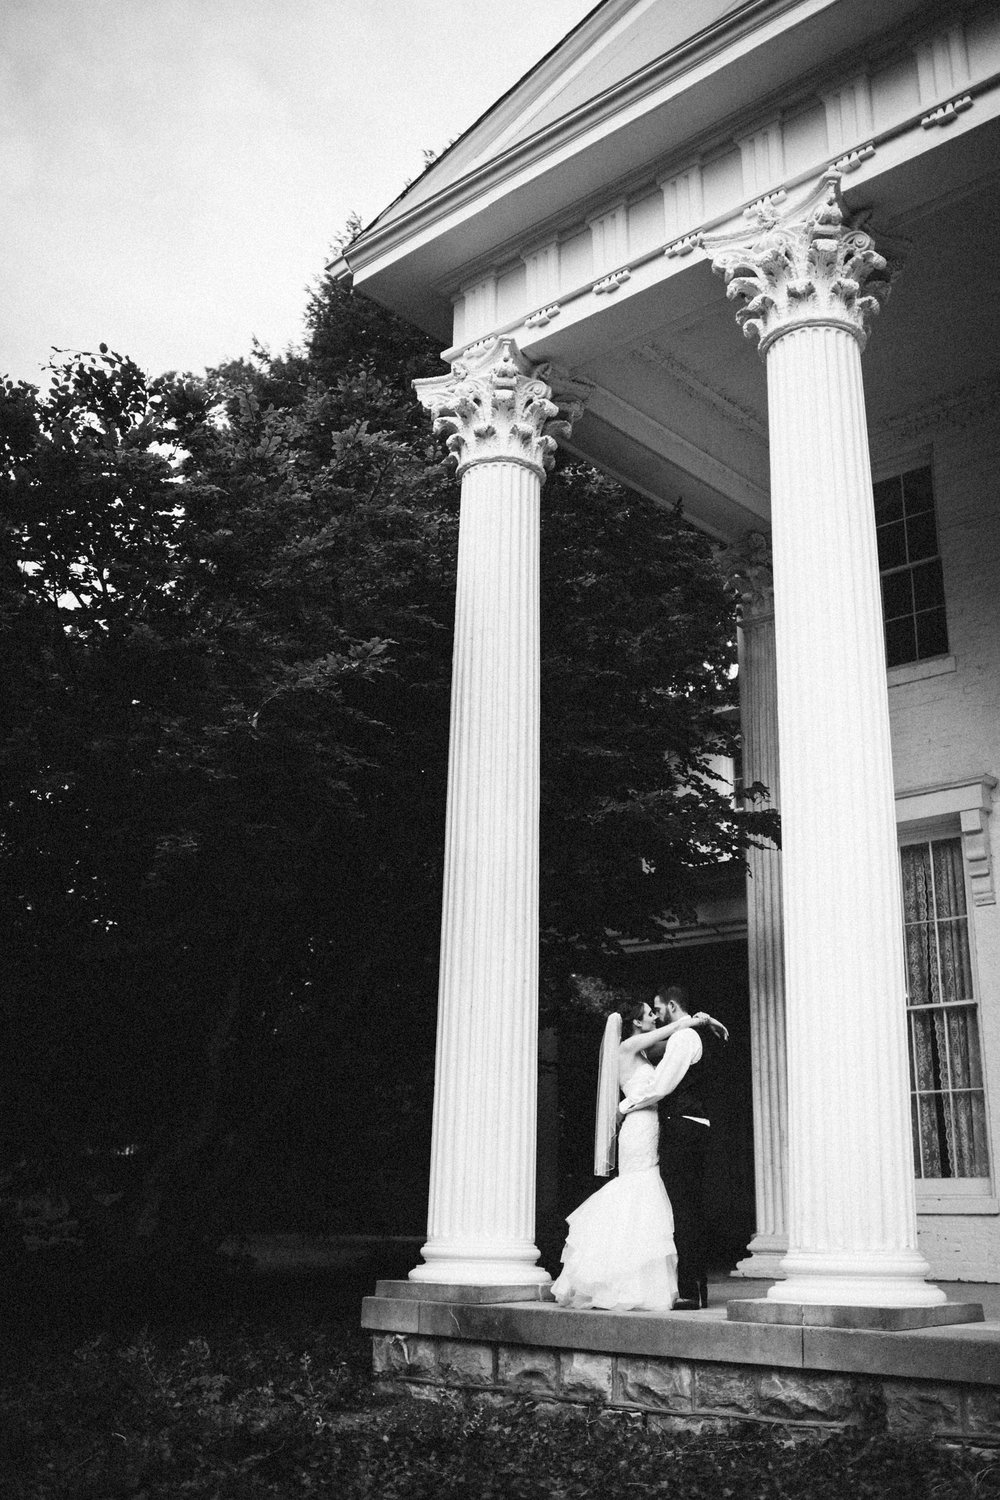 Louisville-Kentucky-Wedding-Elopement-Photographer-Sarah-Katherine-Davis-Photography-Whitehall-Classic-Timeless-Garden-Wedding-573.jpg